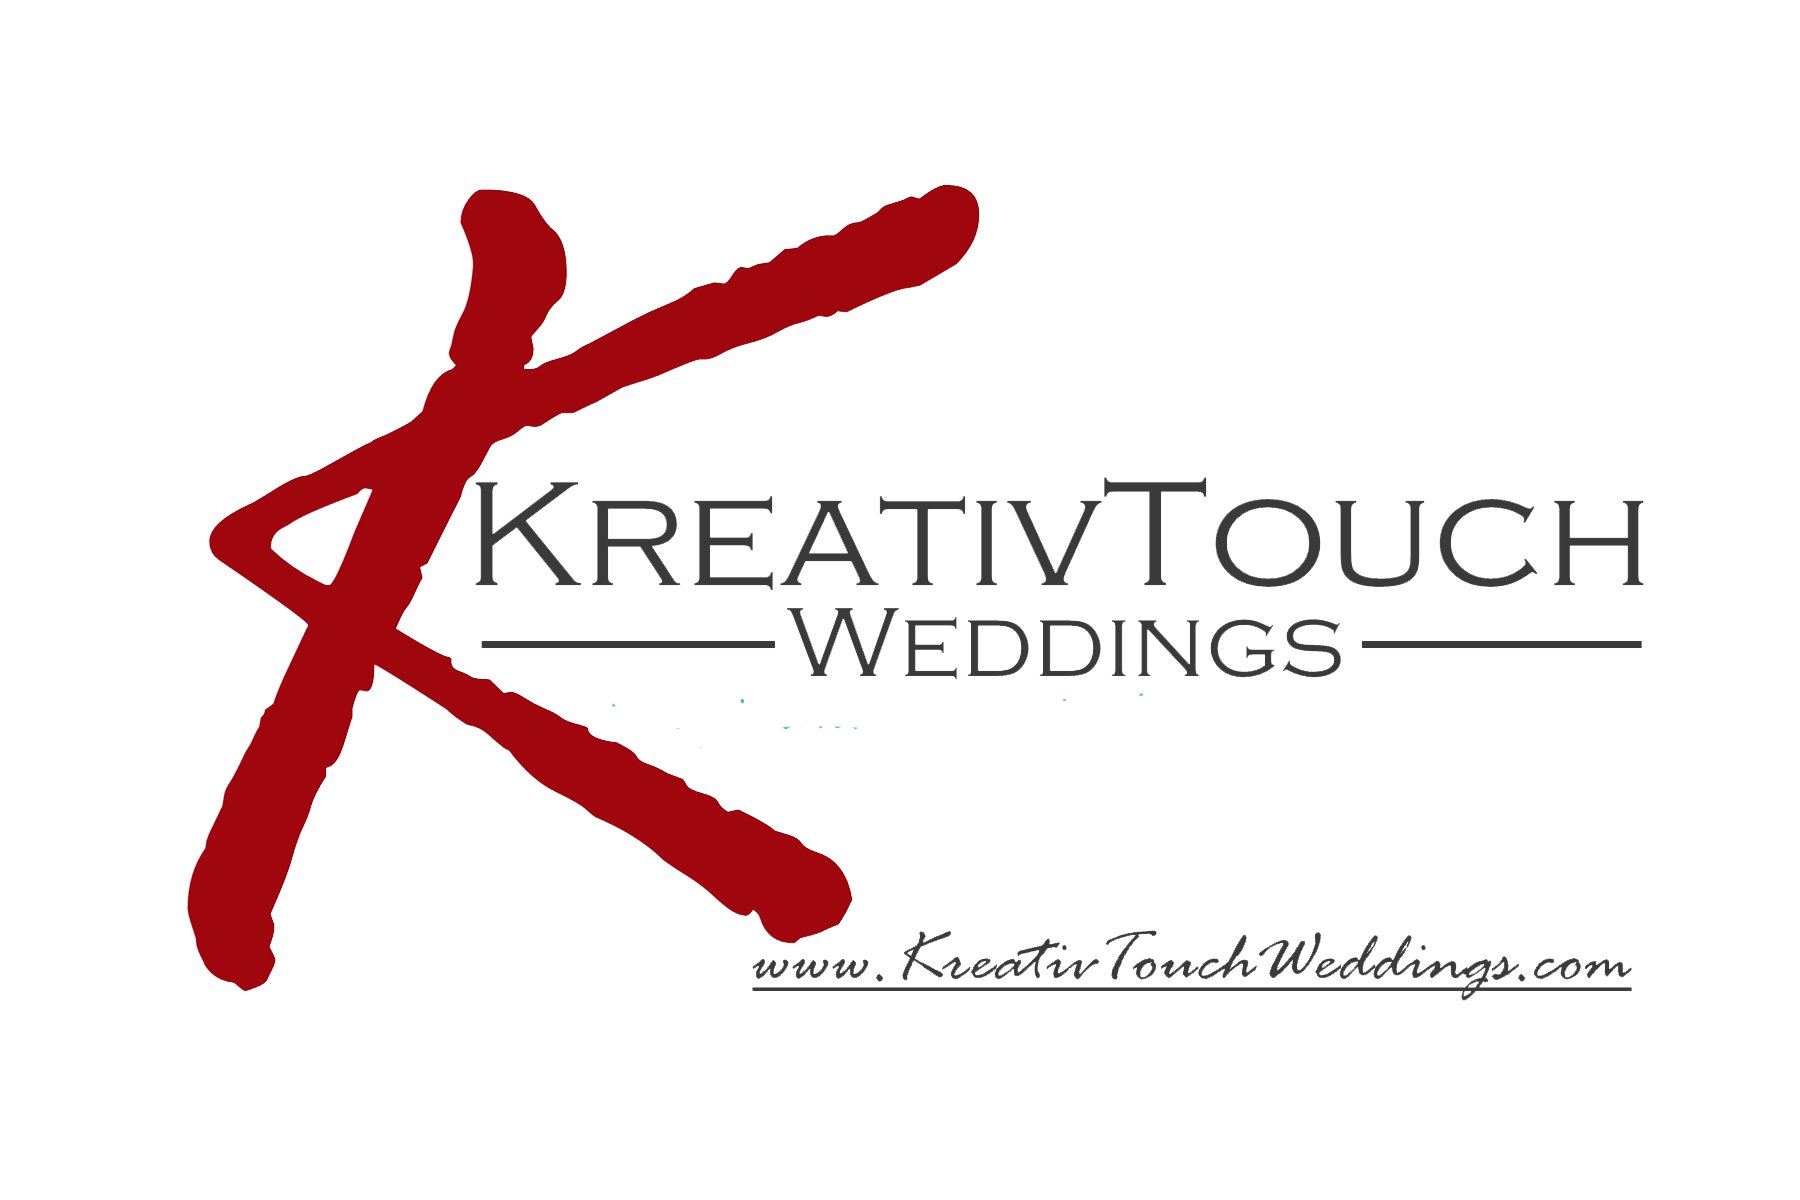 KreativTouch Weddings